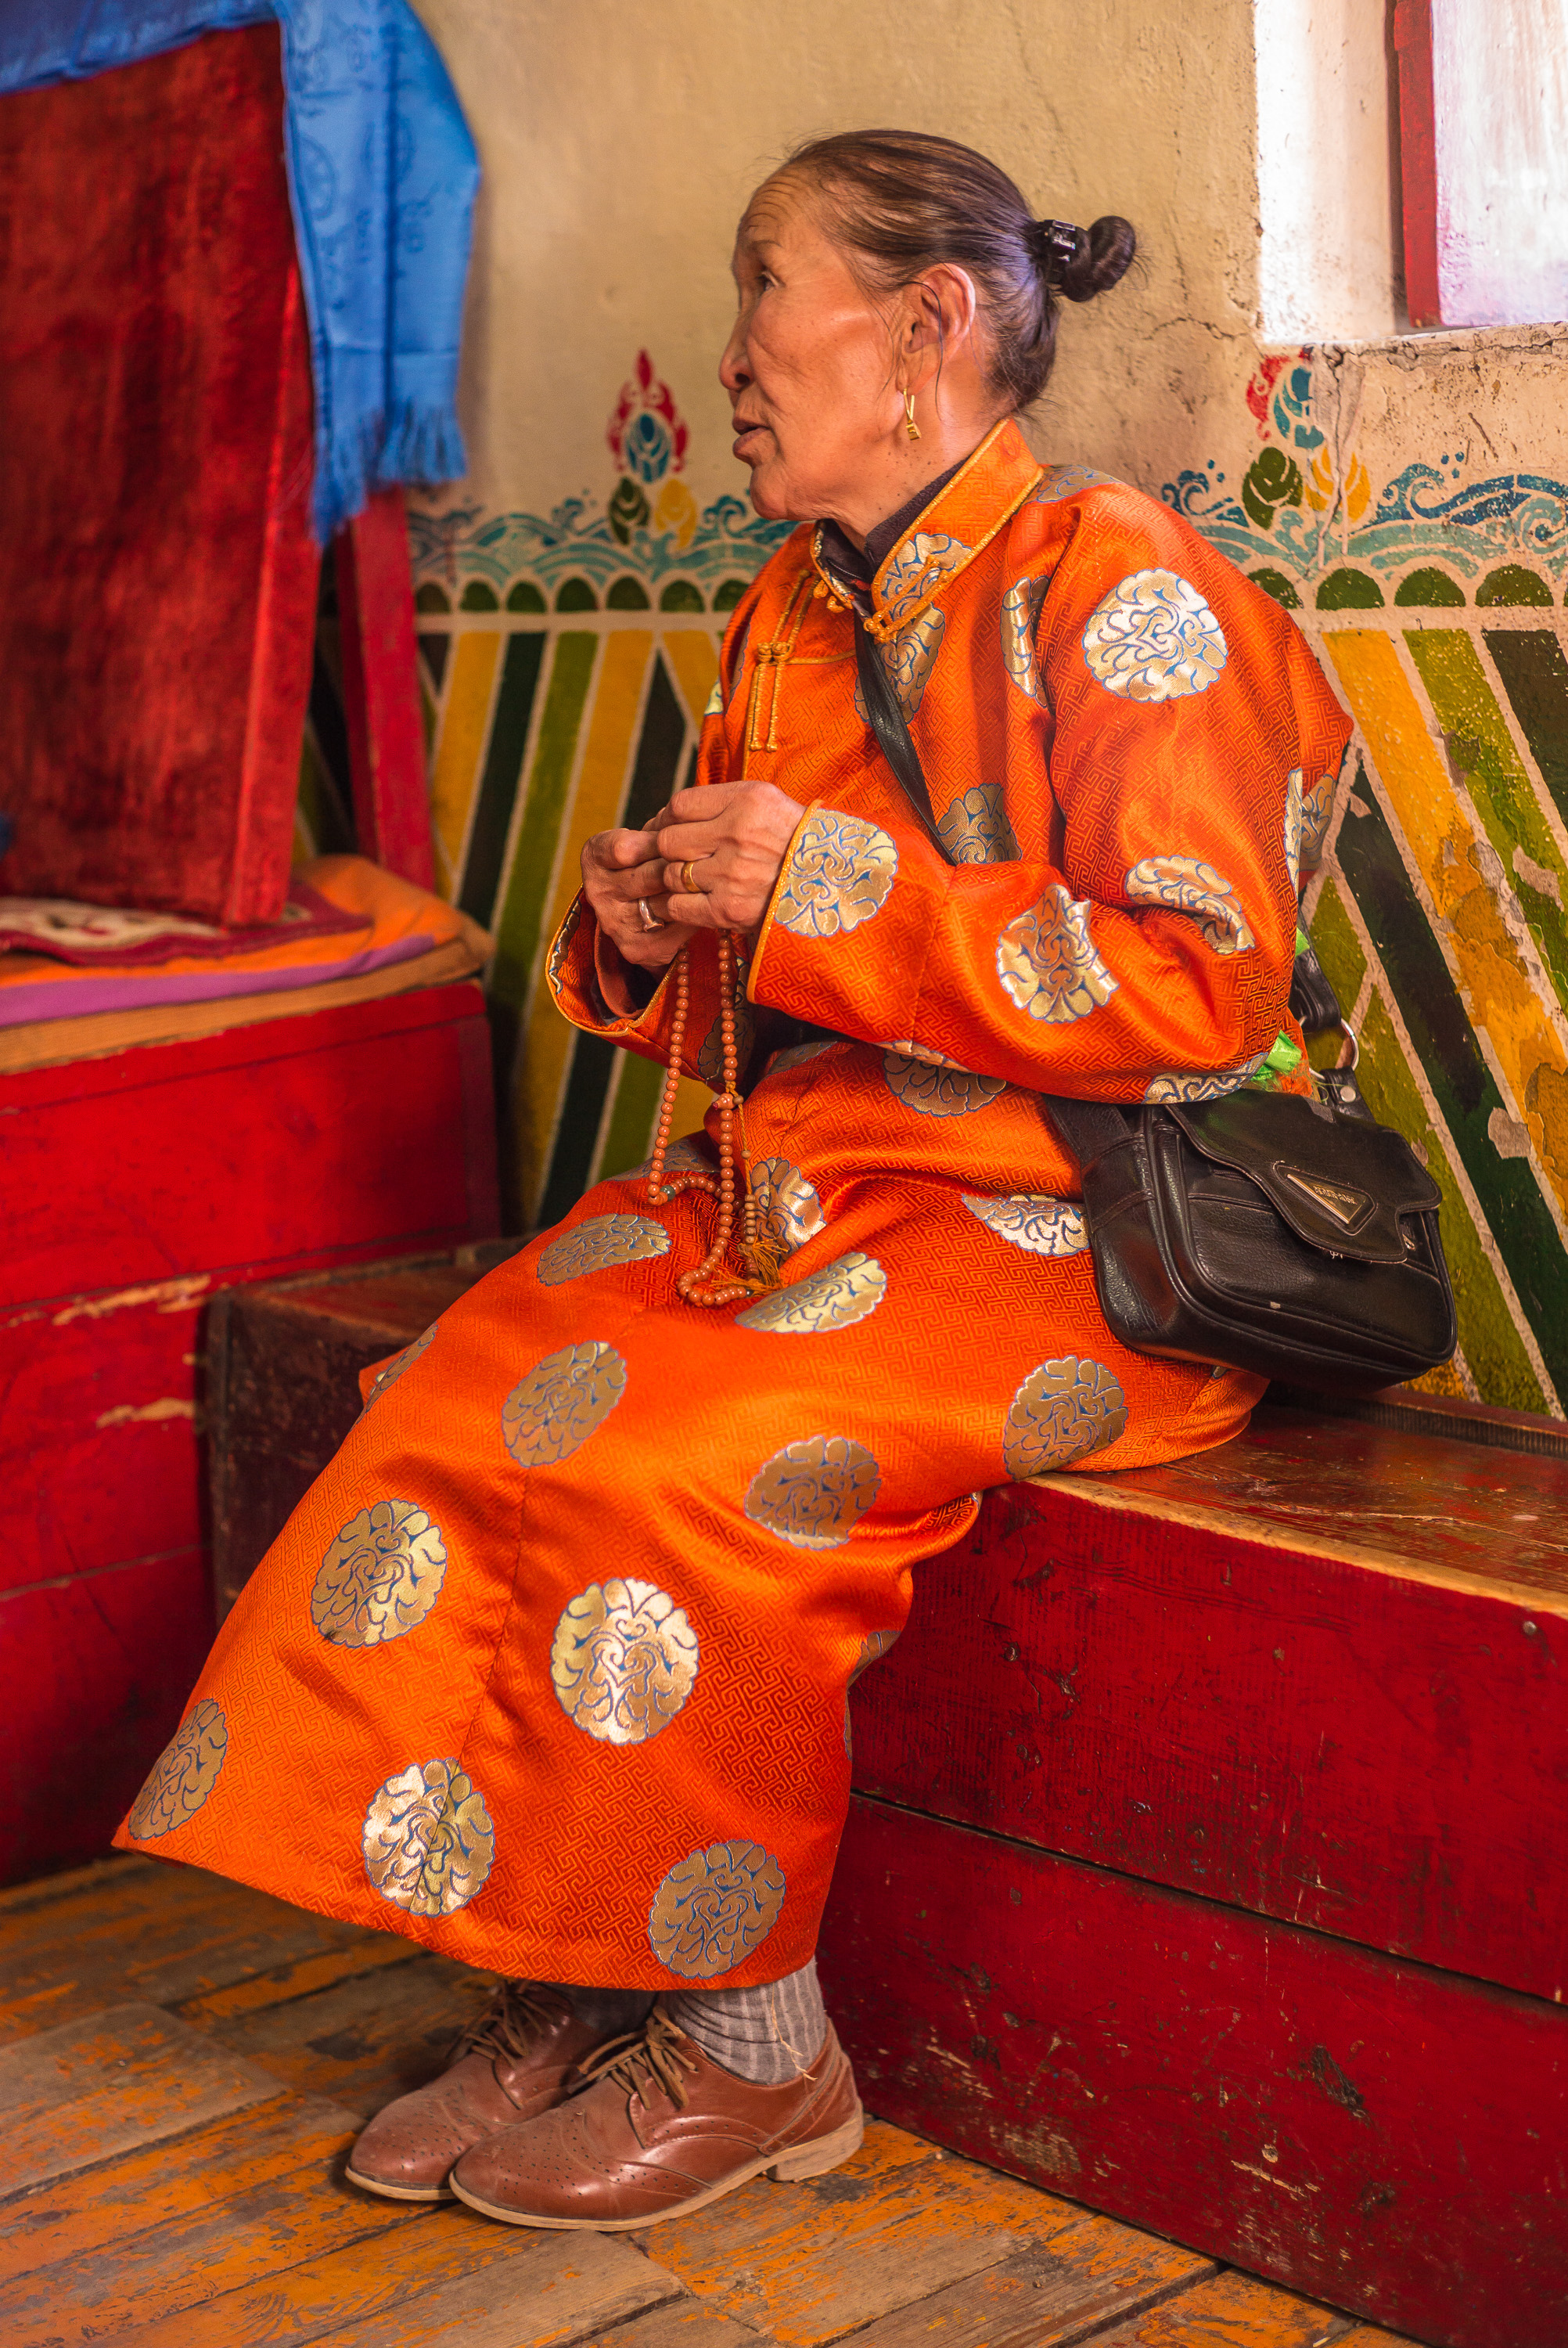 Mongolian supplicant chanting